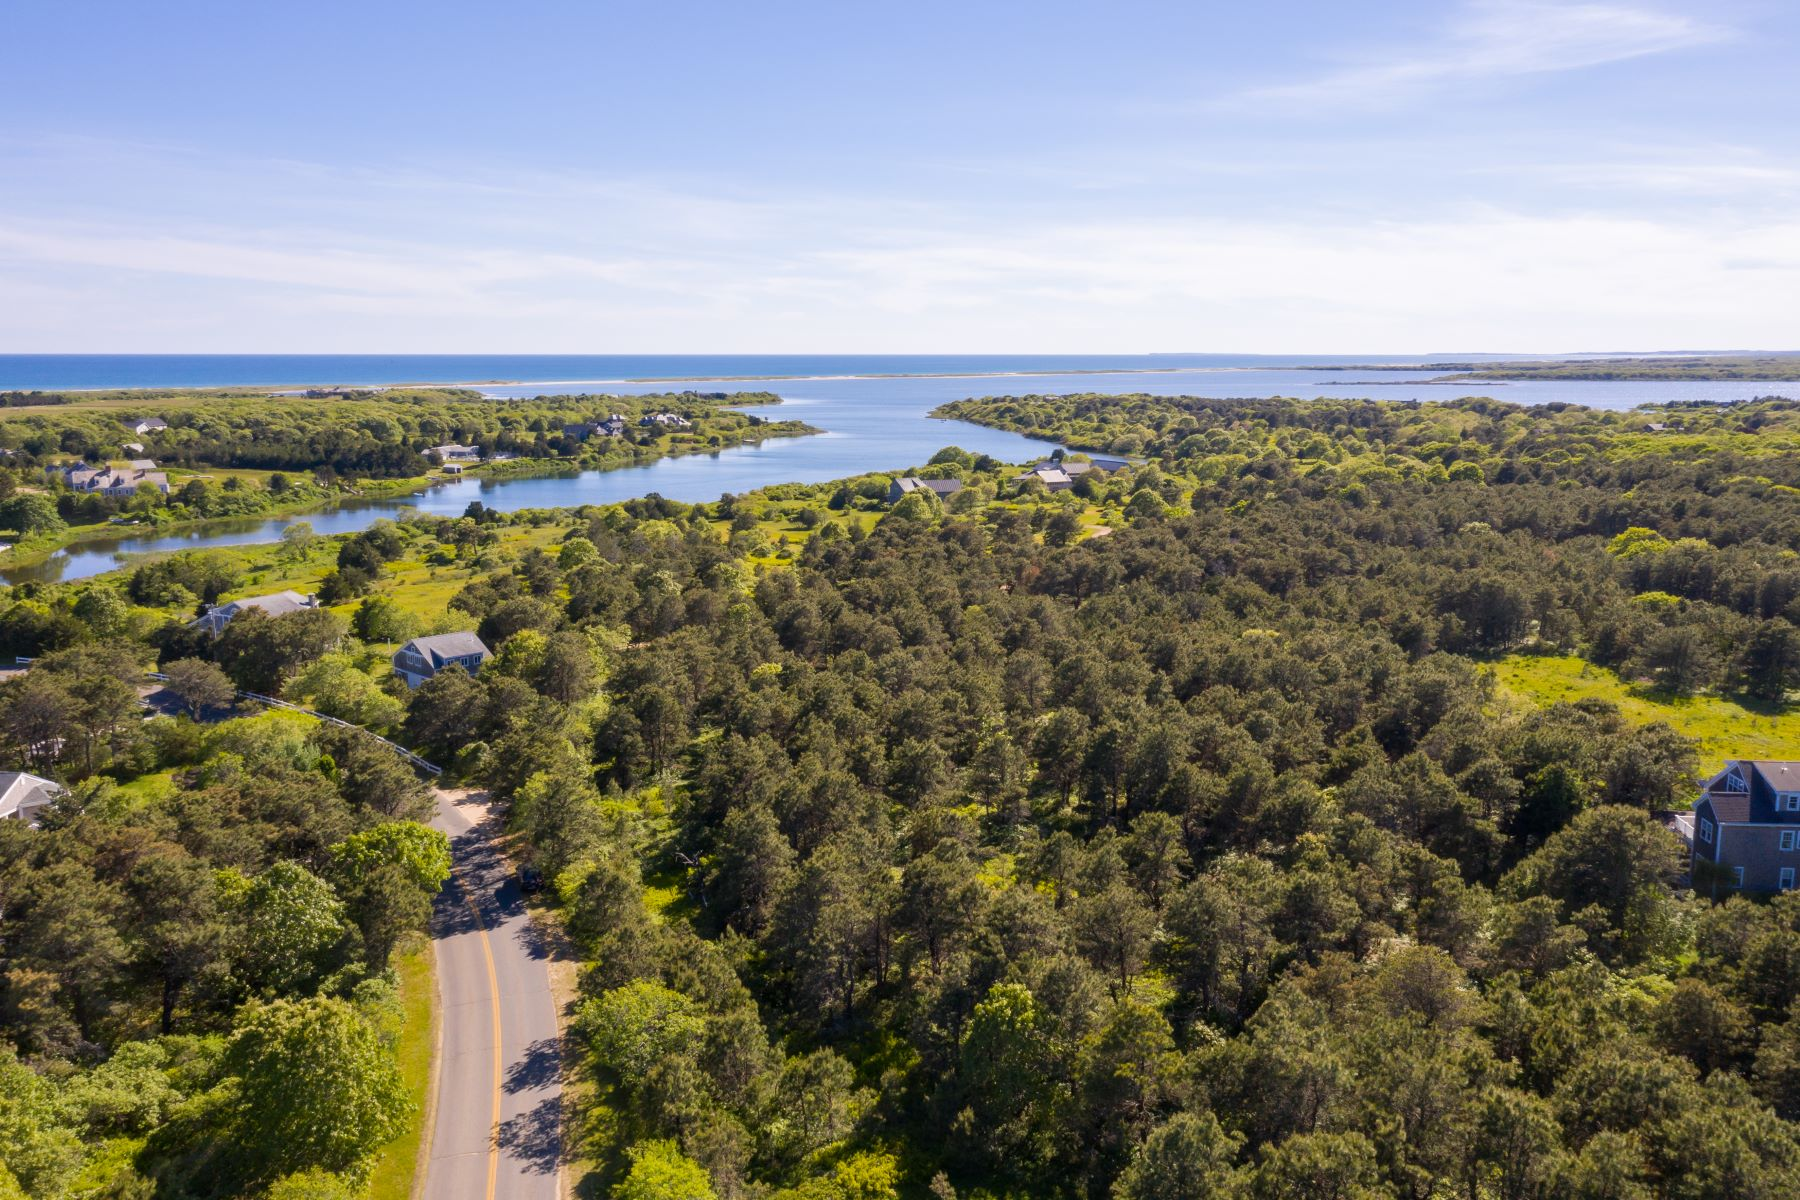 Land for Sale at Ideal Martha's Vineyard Setting Slough Cove Road 12 Loon Cove Way Edgartown, Massachusetts 02539 United States